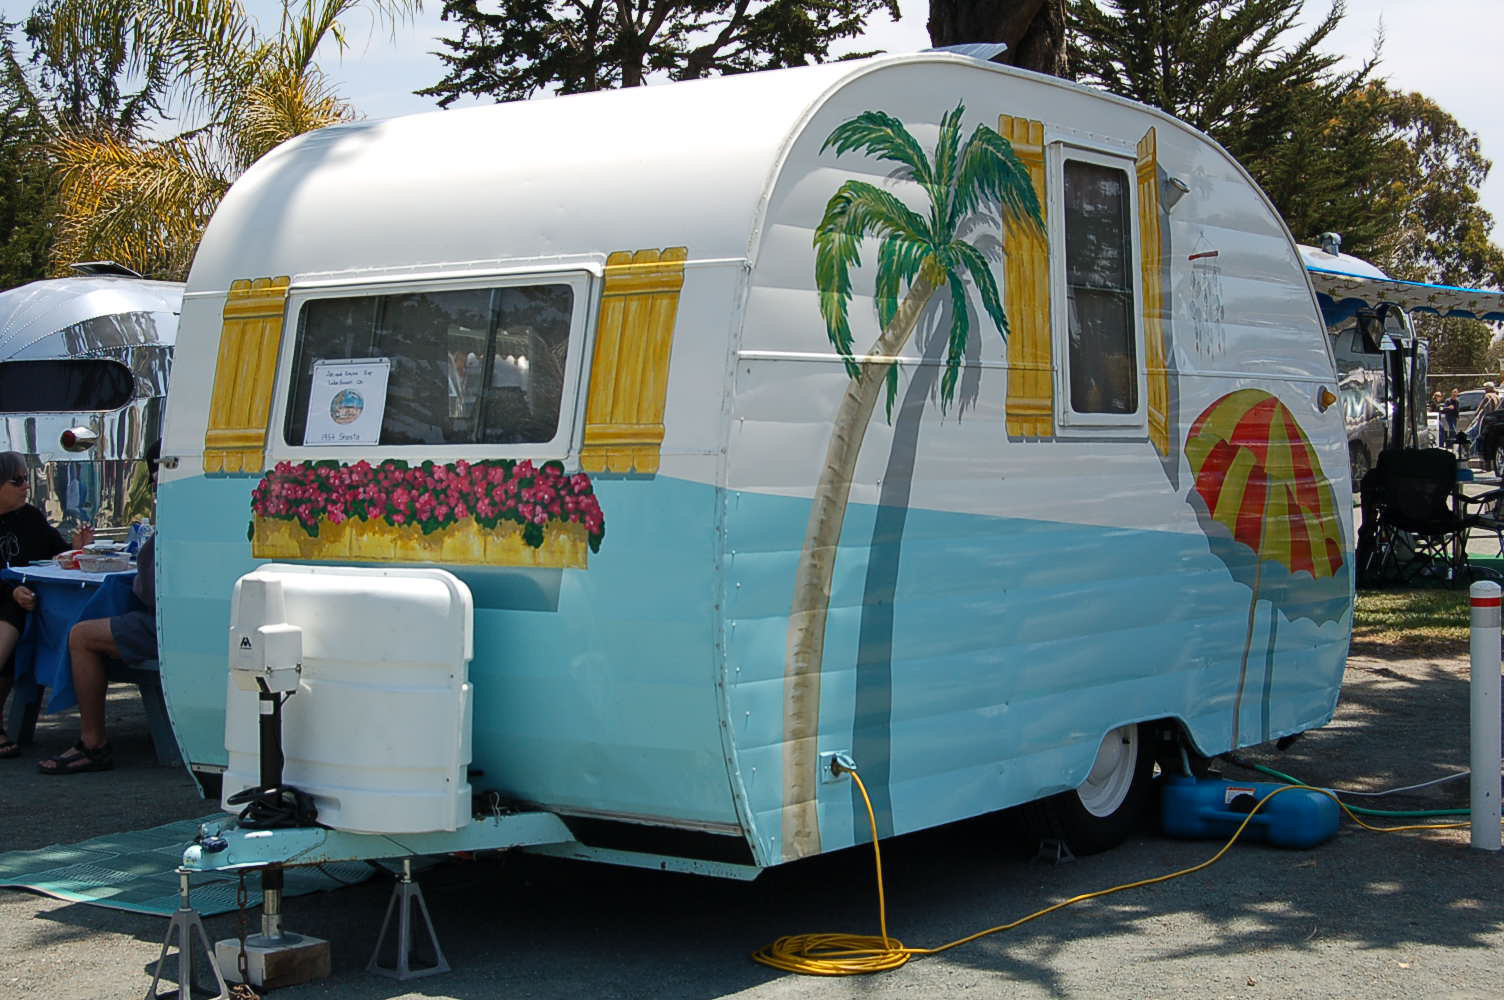 Here Colorful Wild Horses Gallop Across The Side Of This Retro Camper Vintage Shasta Trailer